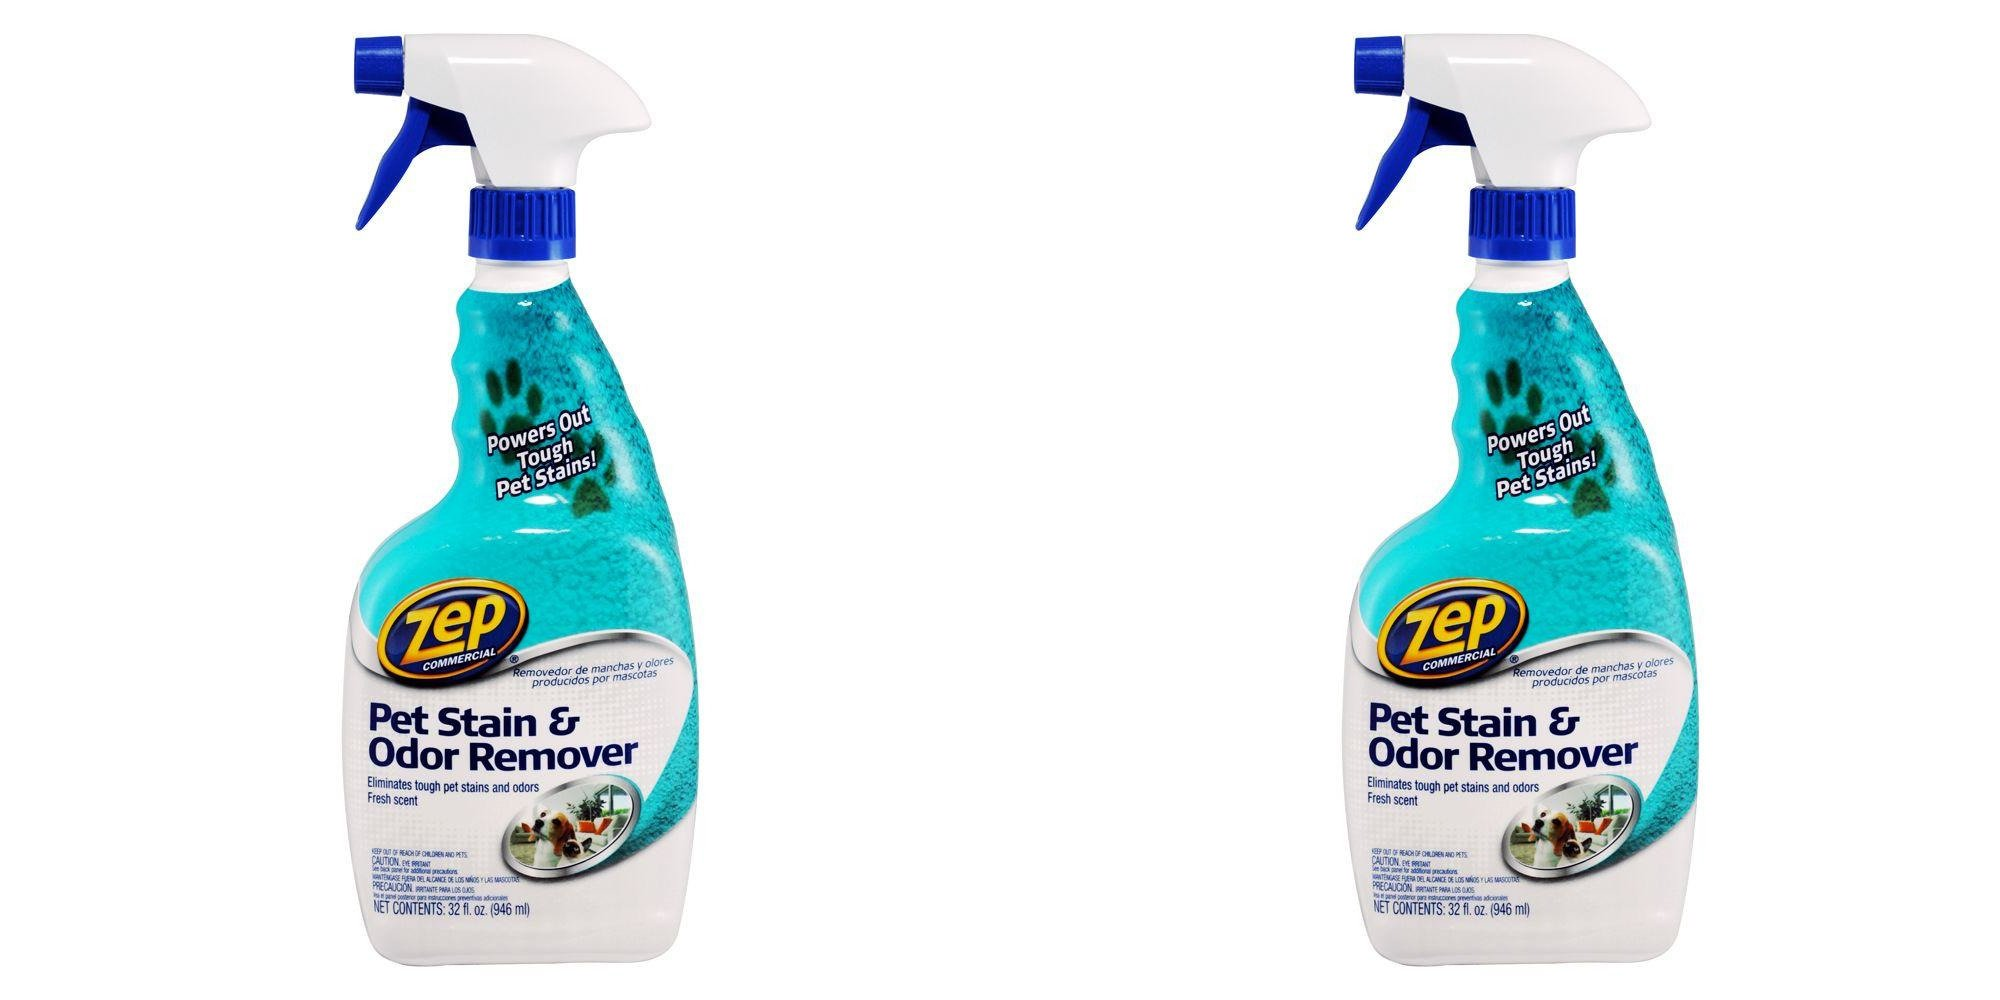 ZEP Commercial PET STAIN & ODOR REMOVER Oxy Formula 32 oz. (2 PACK)